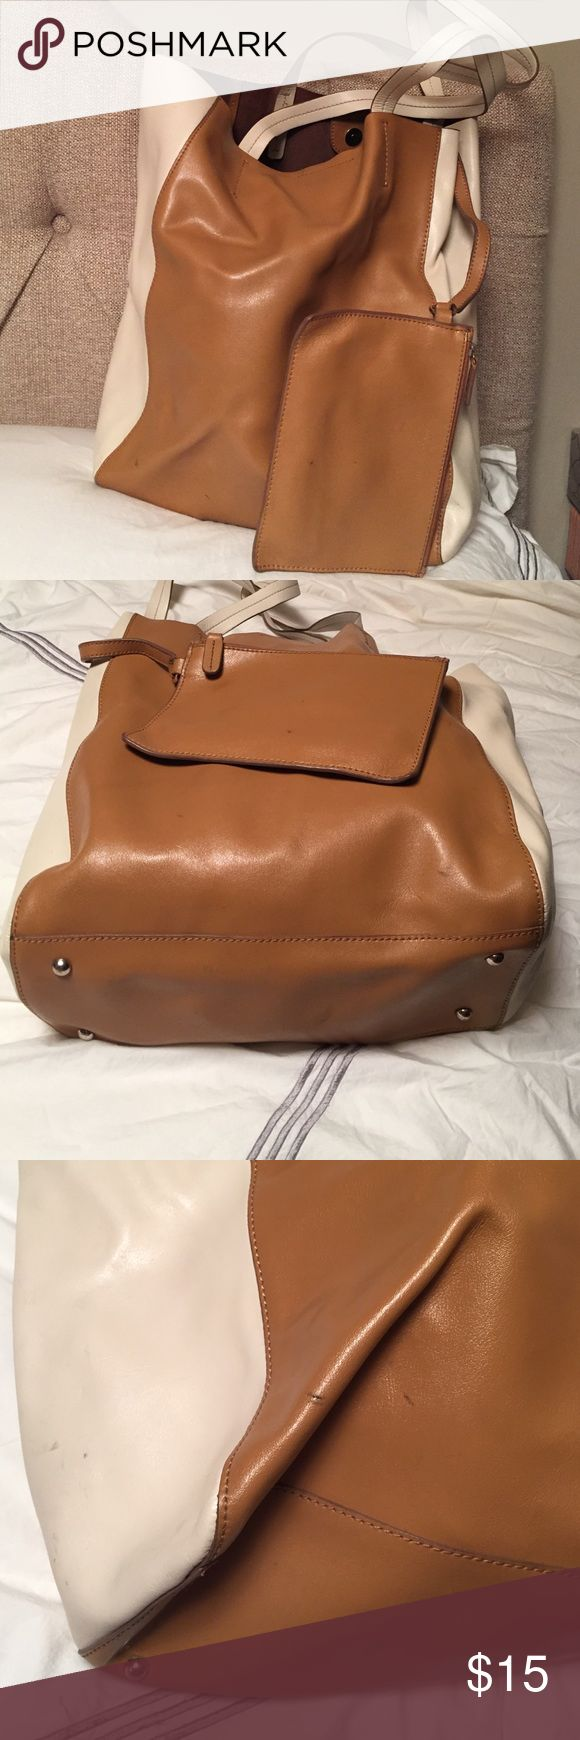 Banana republic real leather bucket bag tote Great condition. Some marks on outside as pictured. Excellent lining condition. Comes with  removable interior pouch. Banana Republic Bags Totes